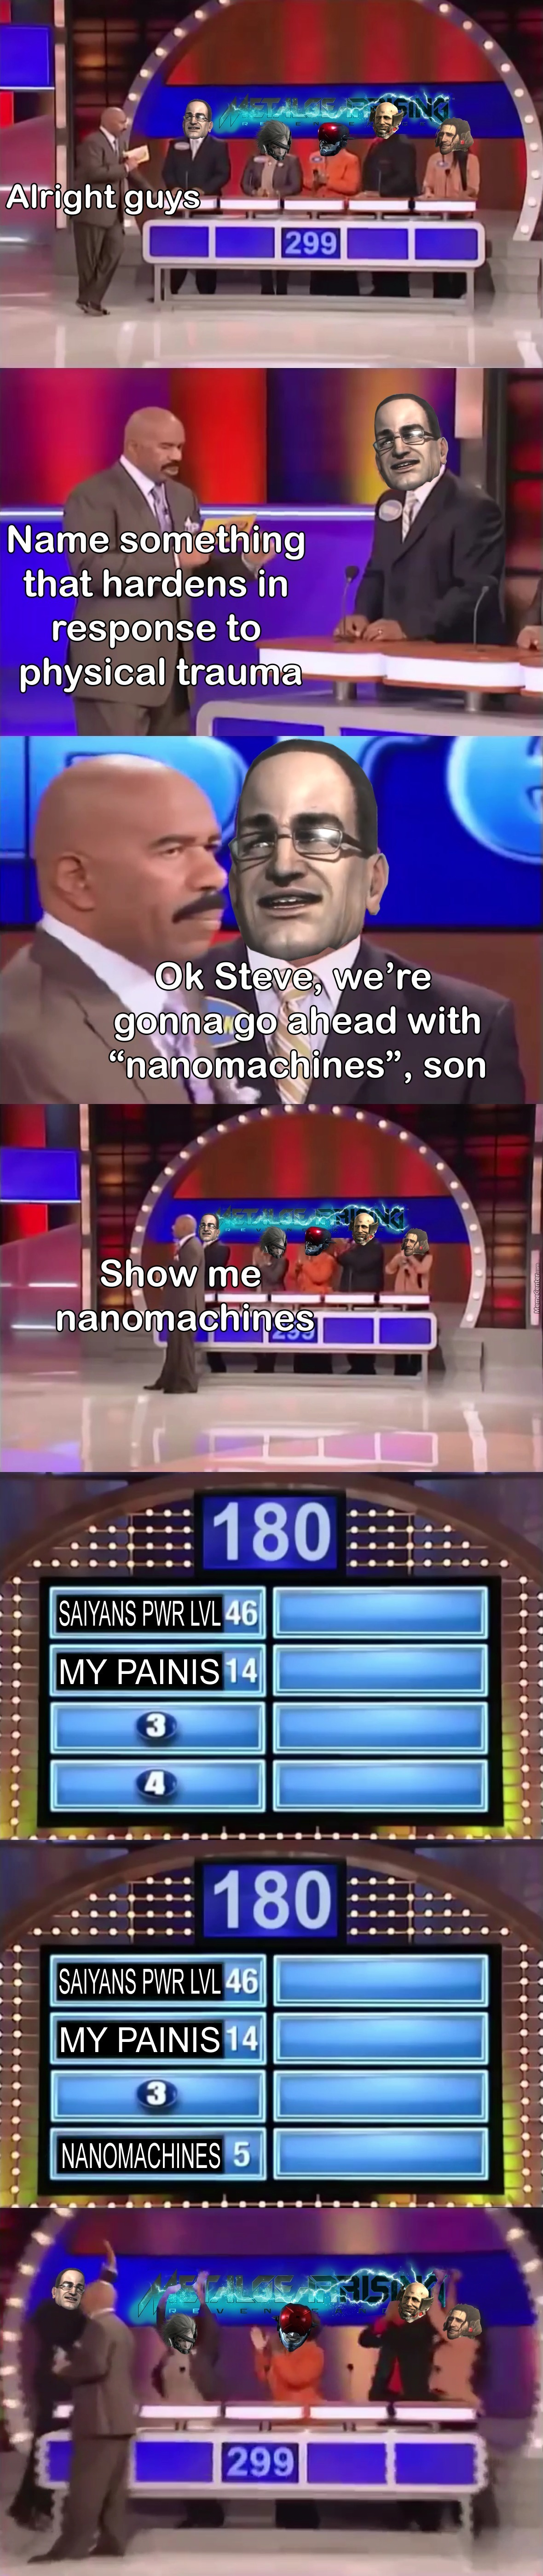 family feud rising revengeance_o_6628943 family feud memes best collection of funny family feud pictures